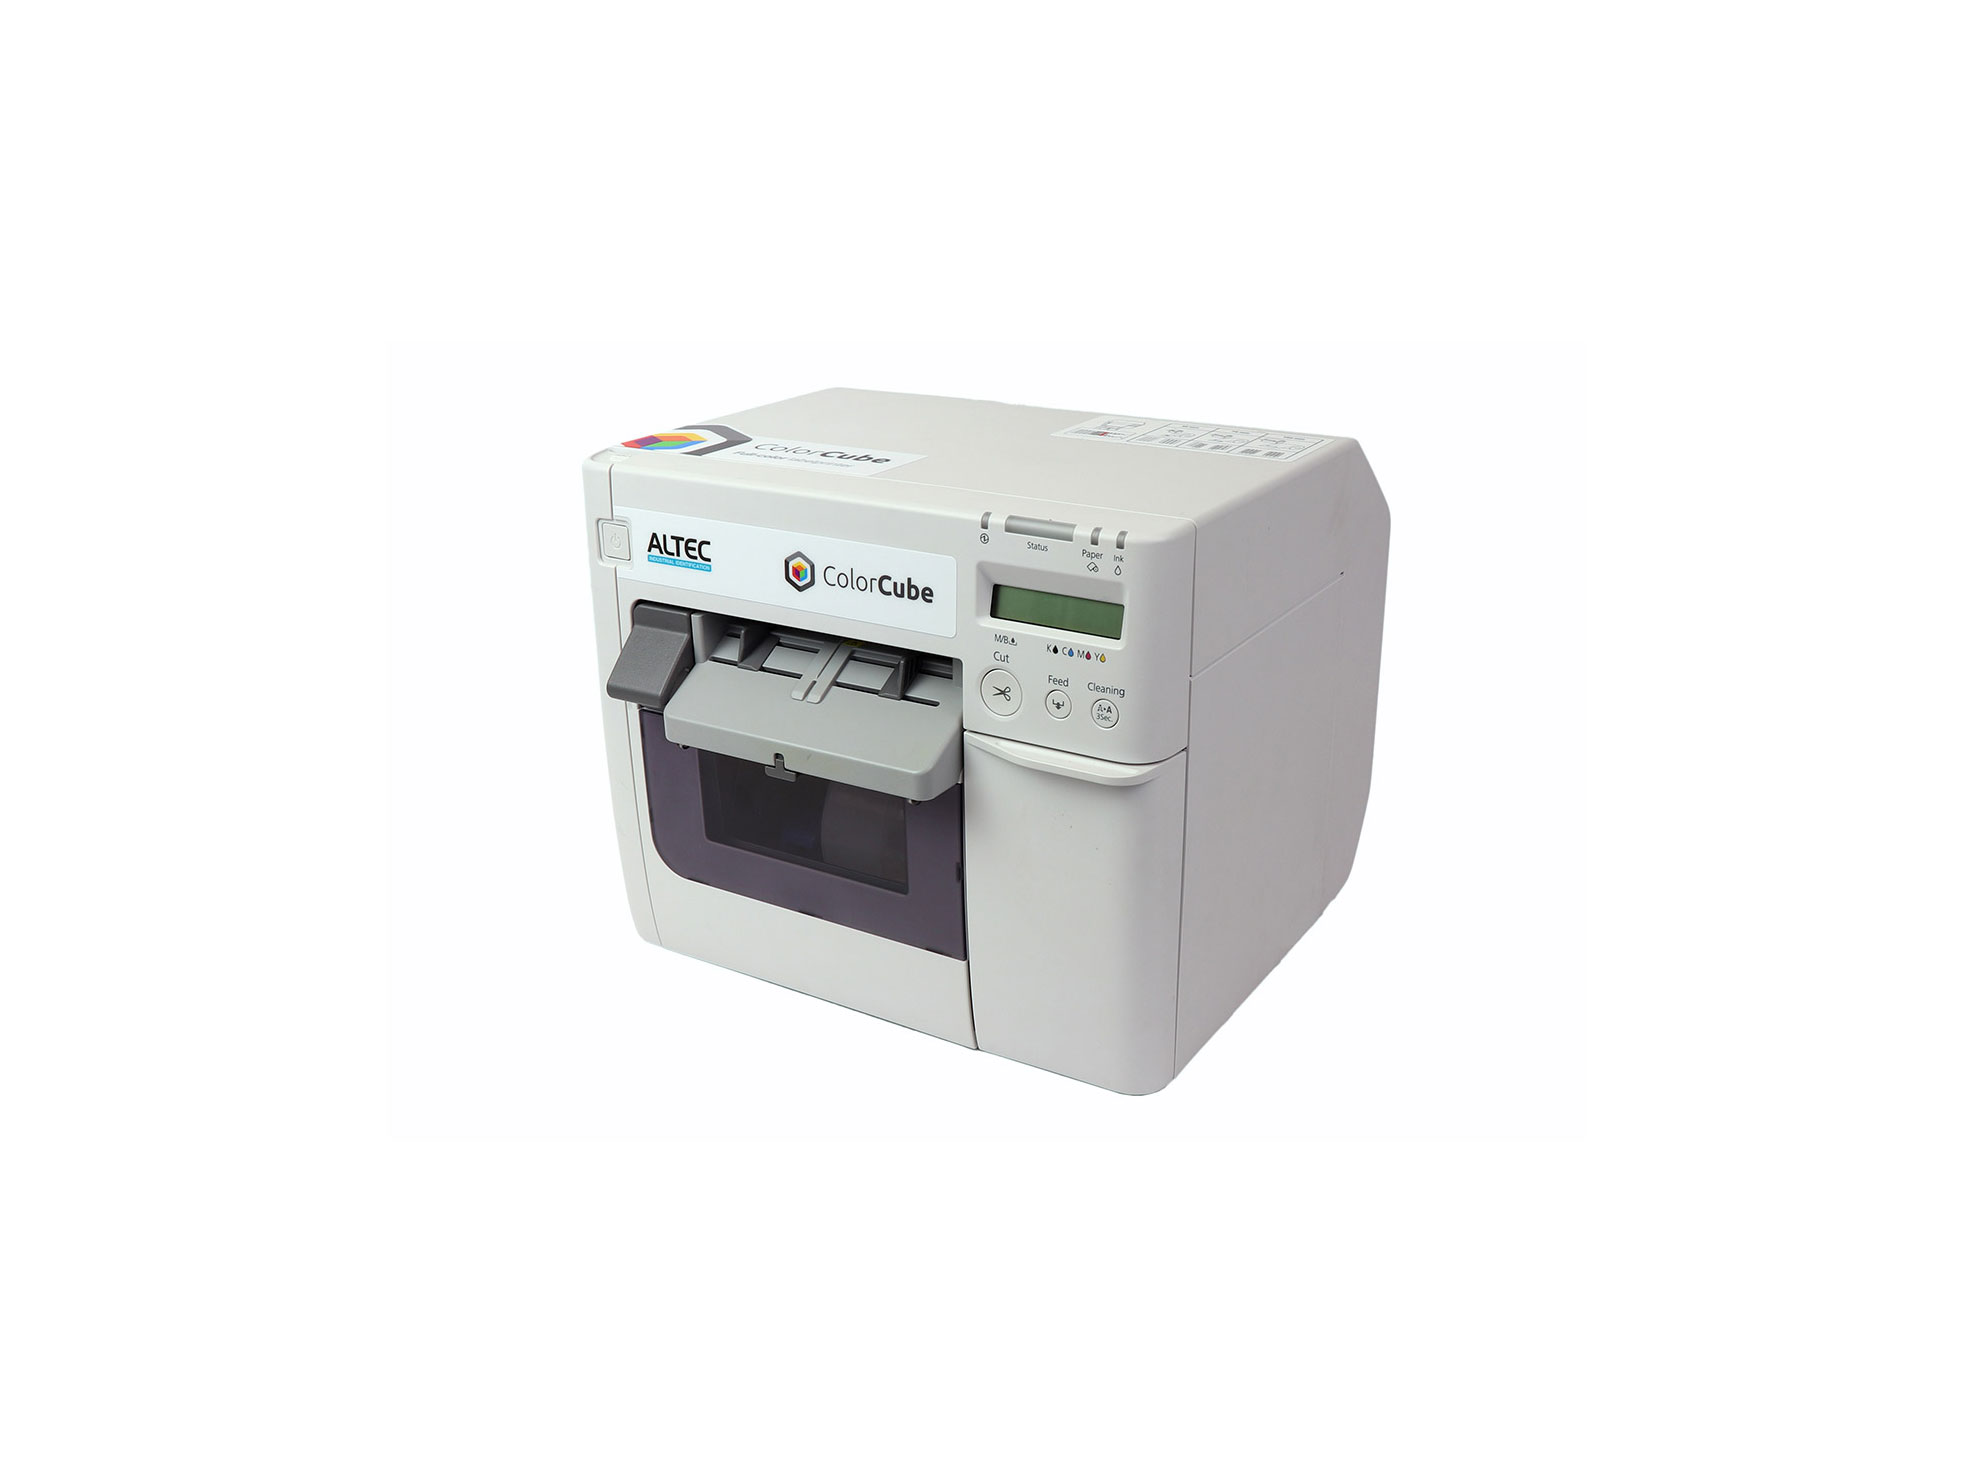 Altec ColorCube full-color labelprinter